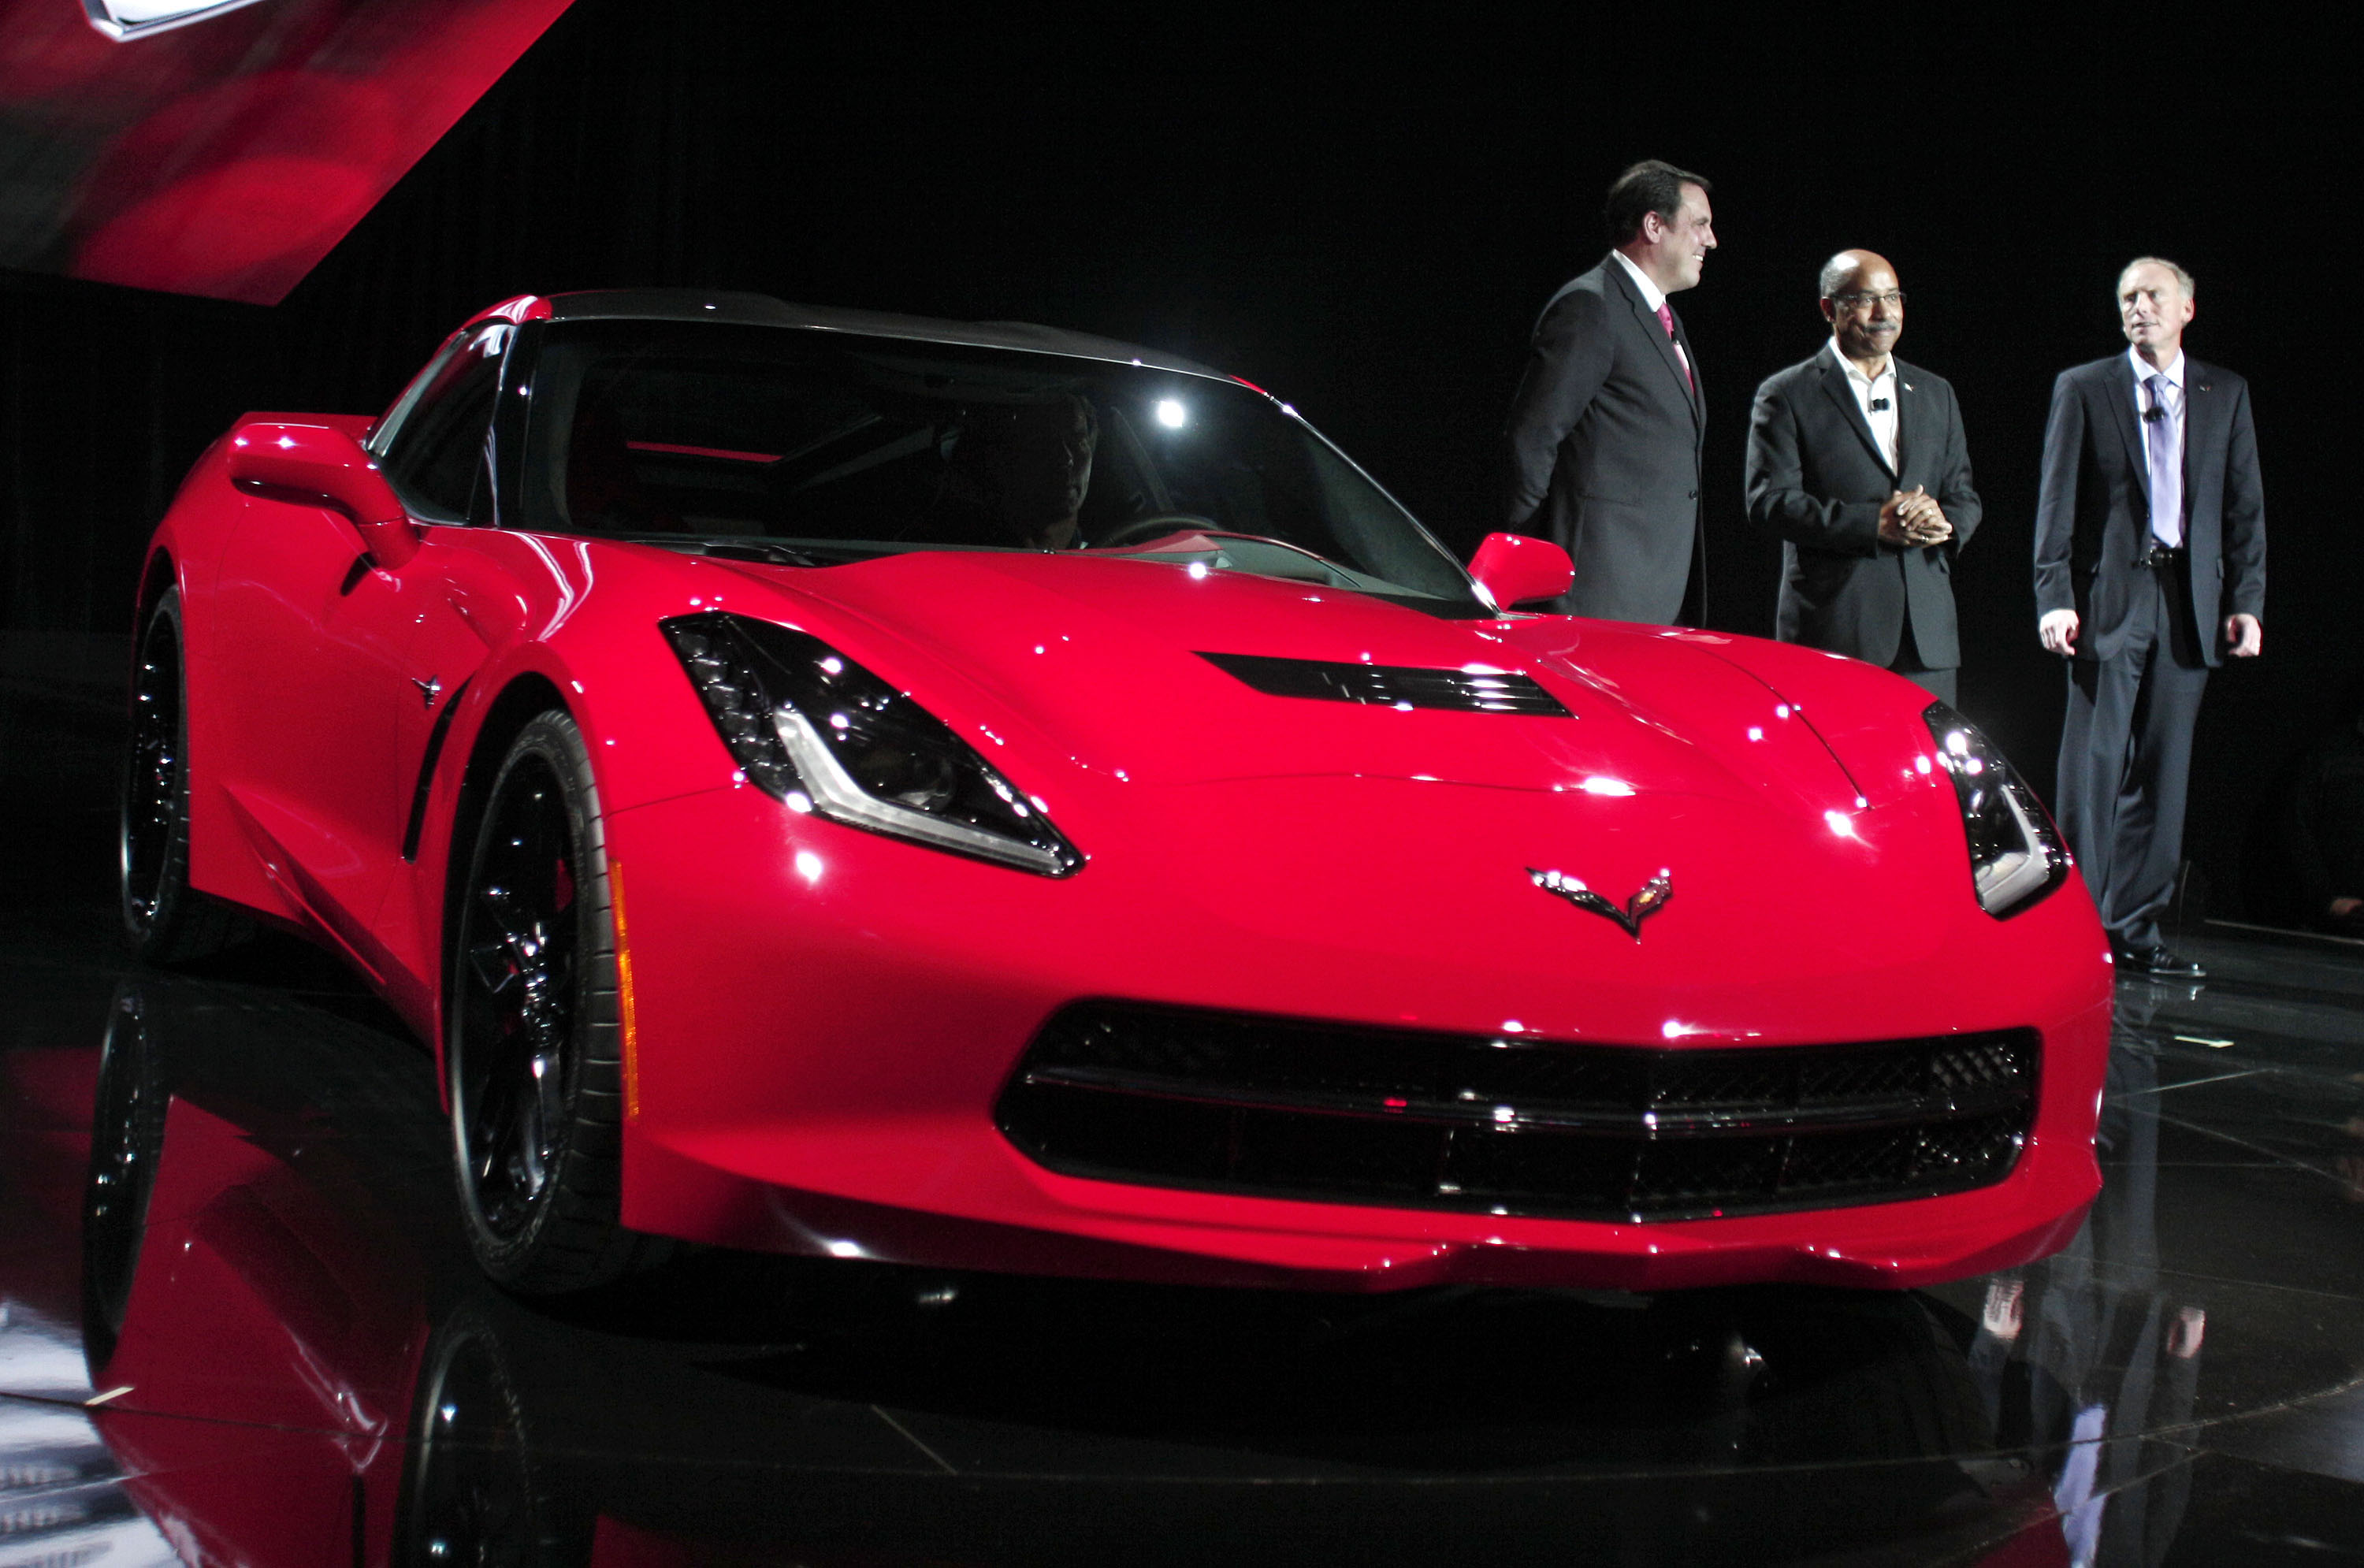 The 7th-generation Chevrolet Corvette, the C7.